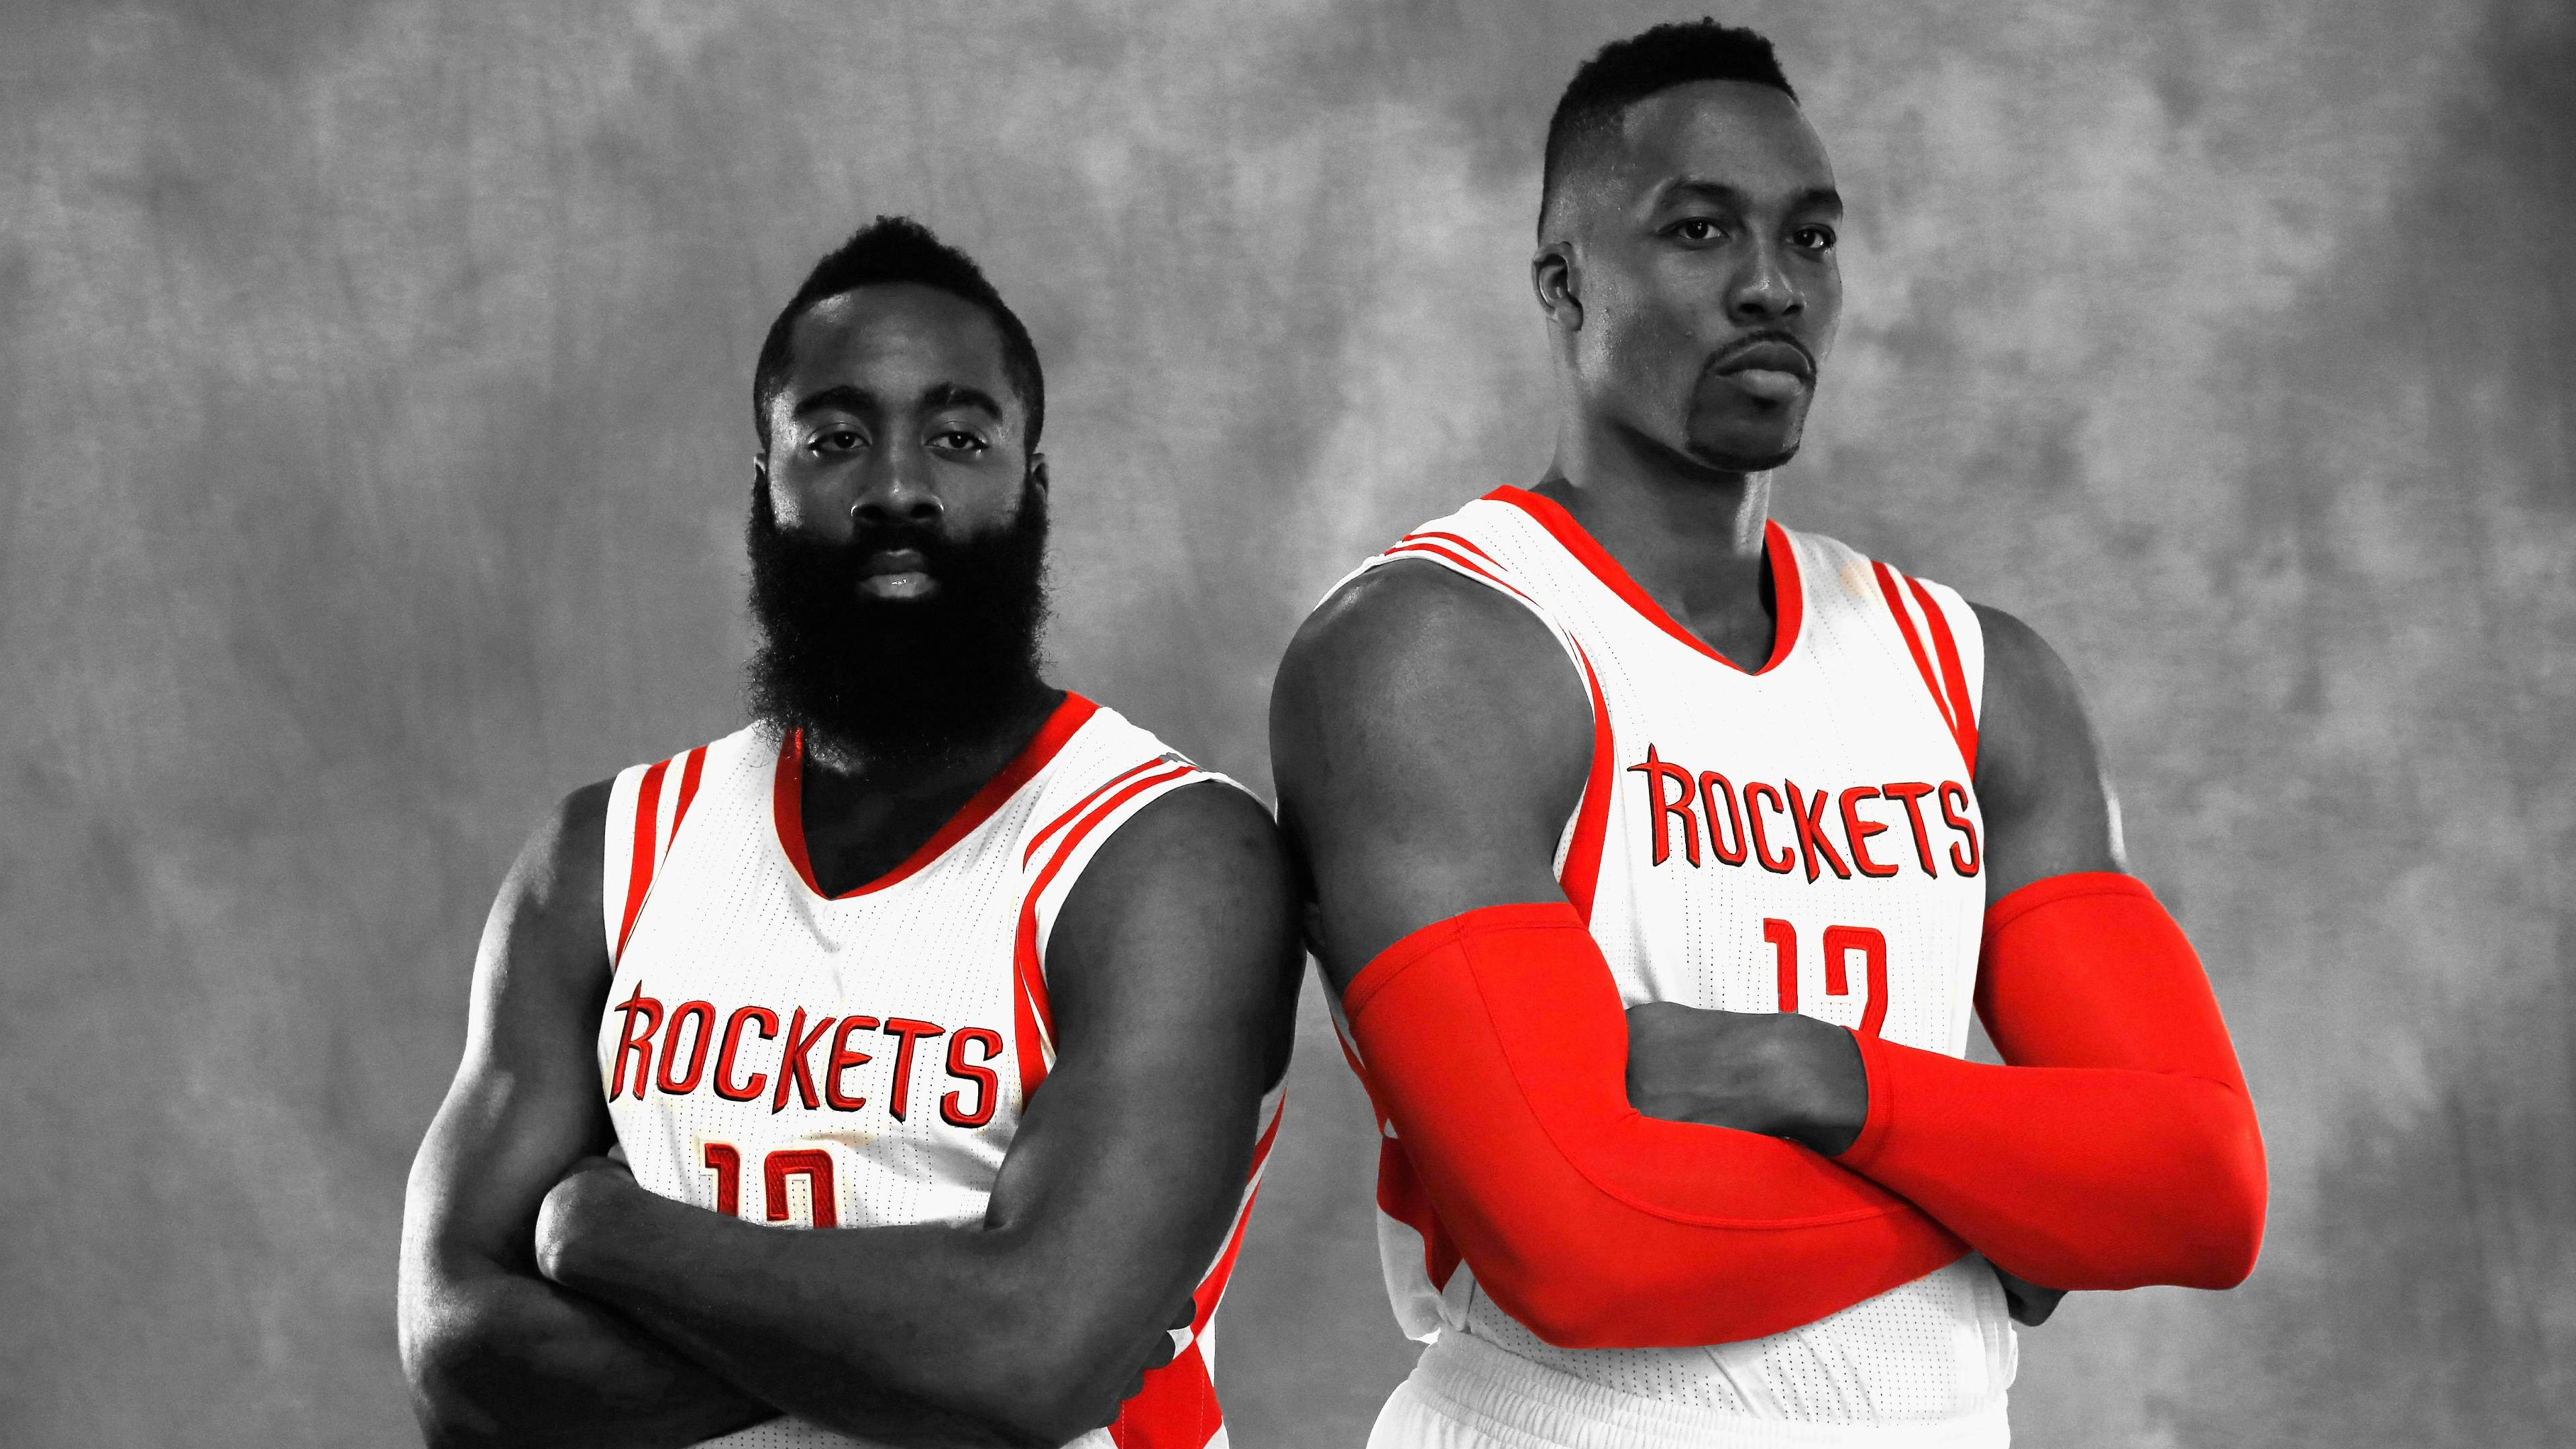 I edited a picture of Harden & Howard to make a wallpaper …